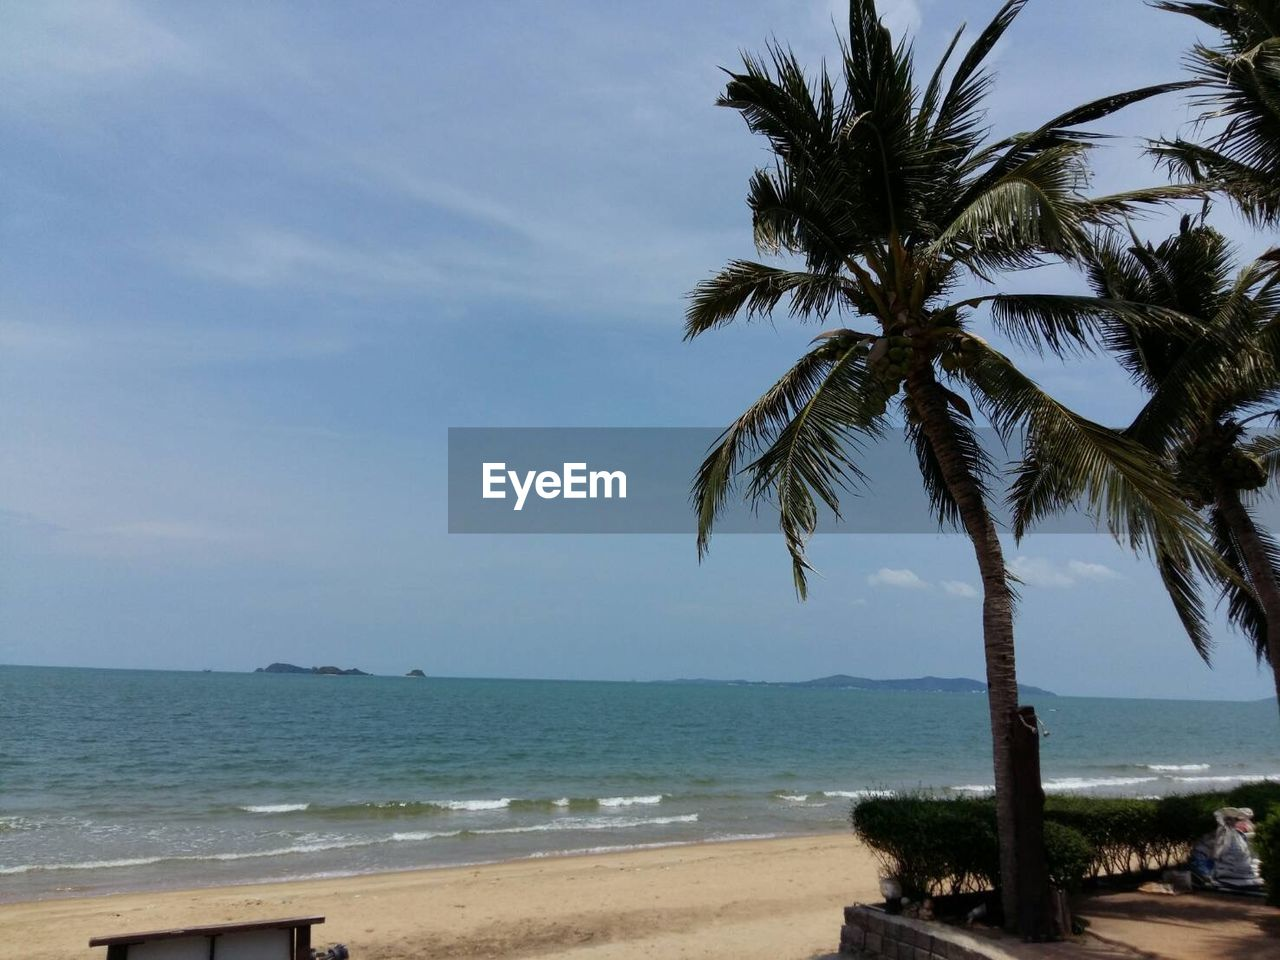 sea, beach, palm tree, horizon over water, water, scenics, beauty in nature, shore, nature, tranquility, tree, tranquil scene, sky, day, sand, no people, outdoors, vacations, wave